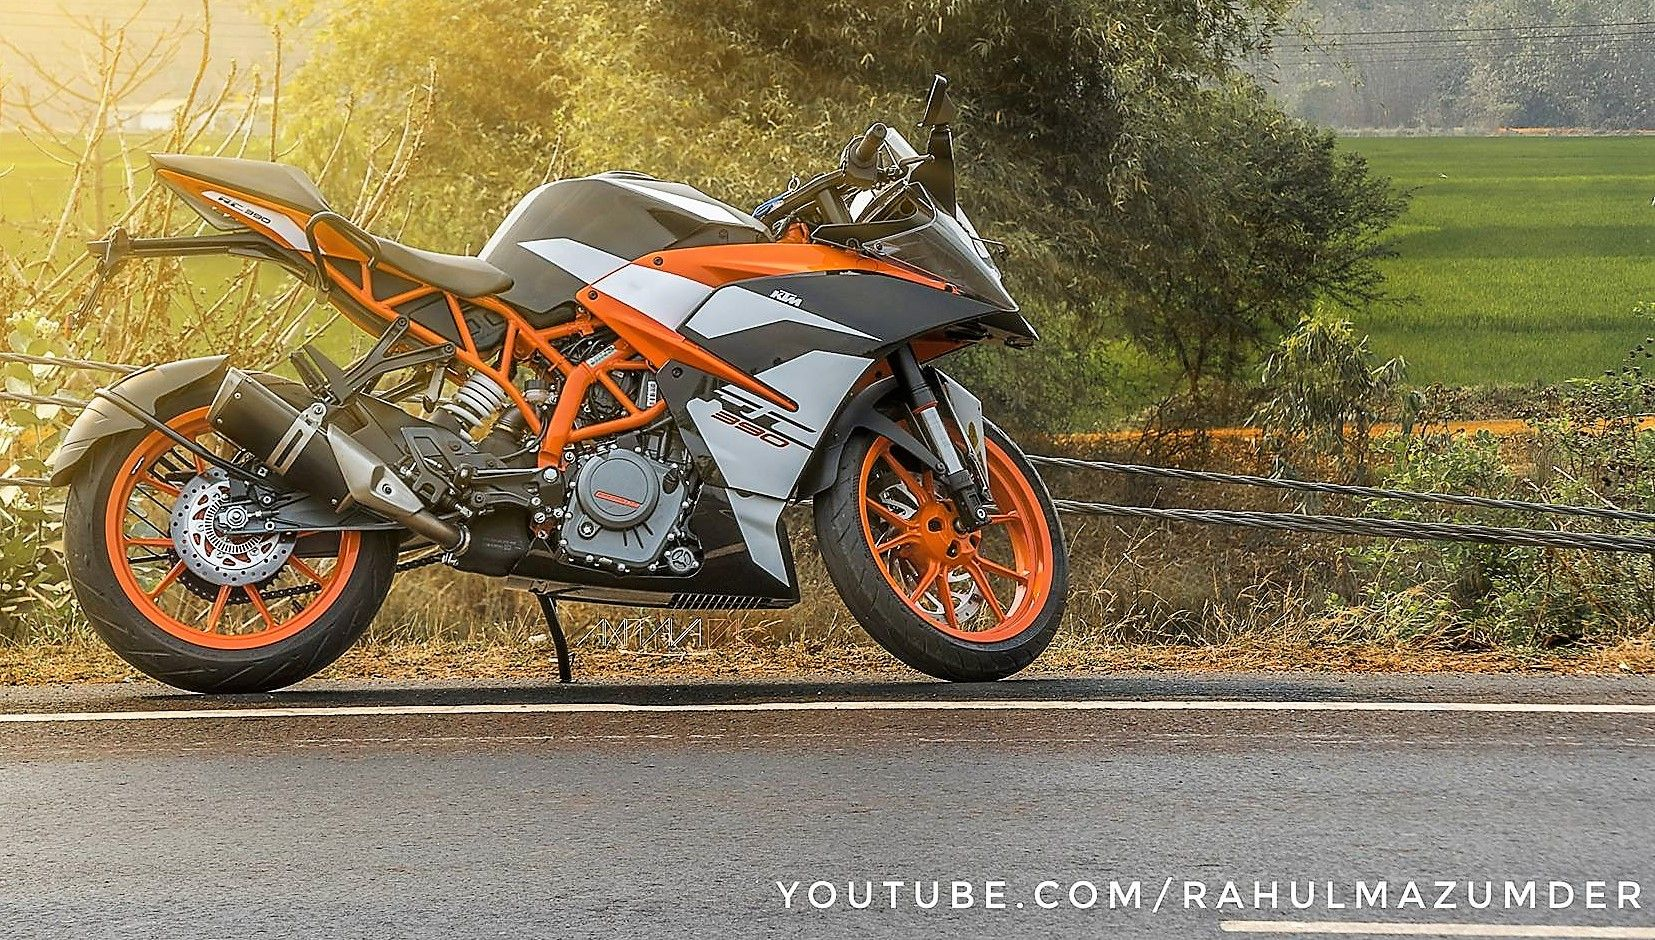 KTM RC 390 Ride Review (300 kms) by Rahul Mazumder